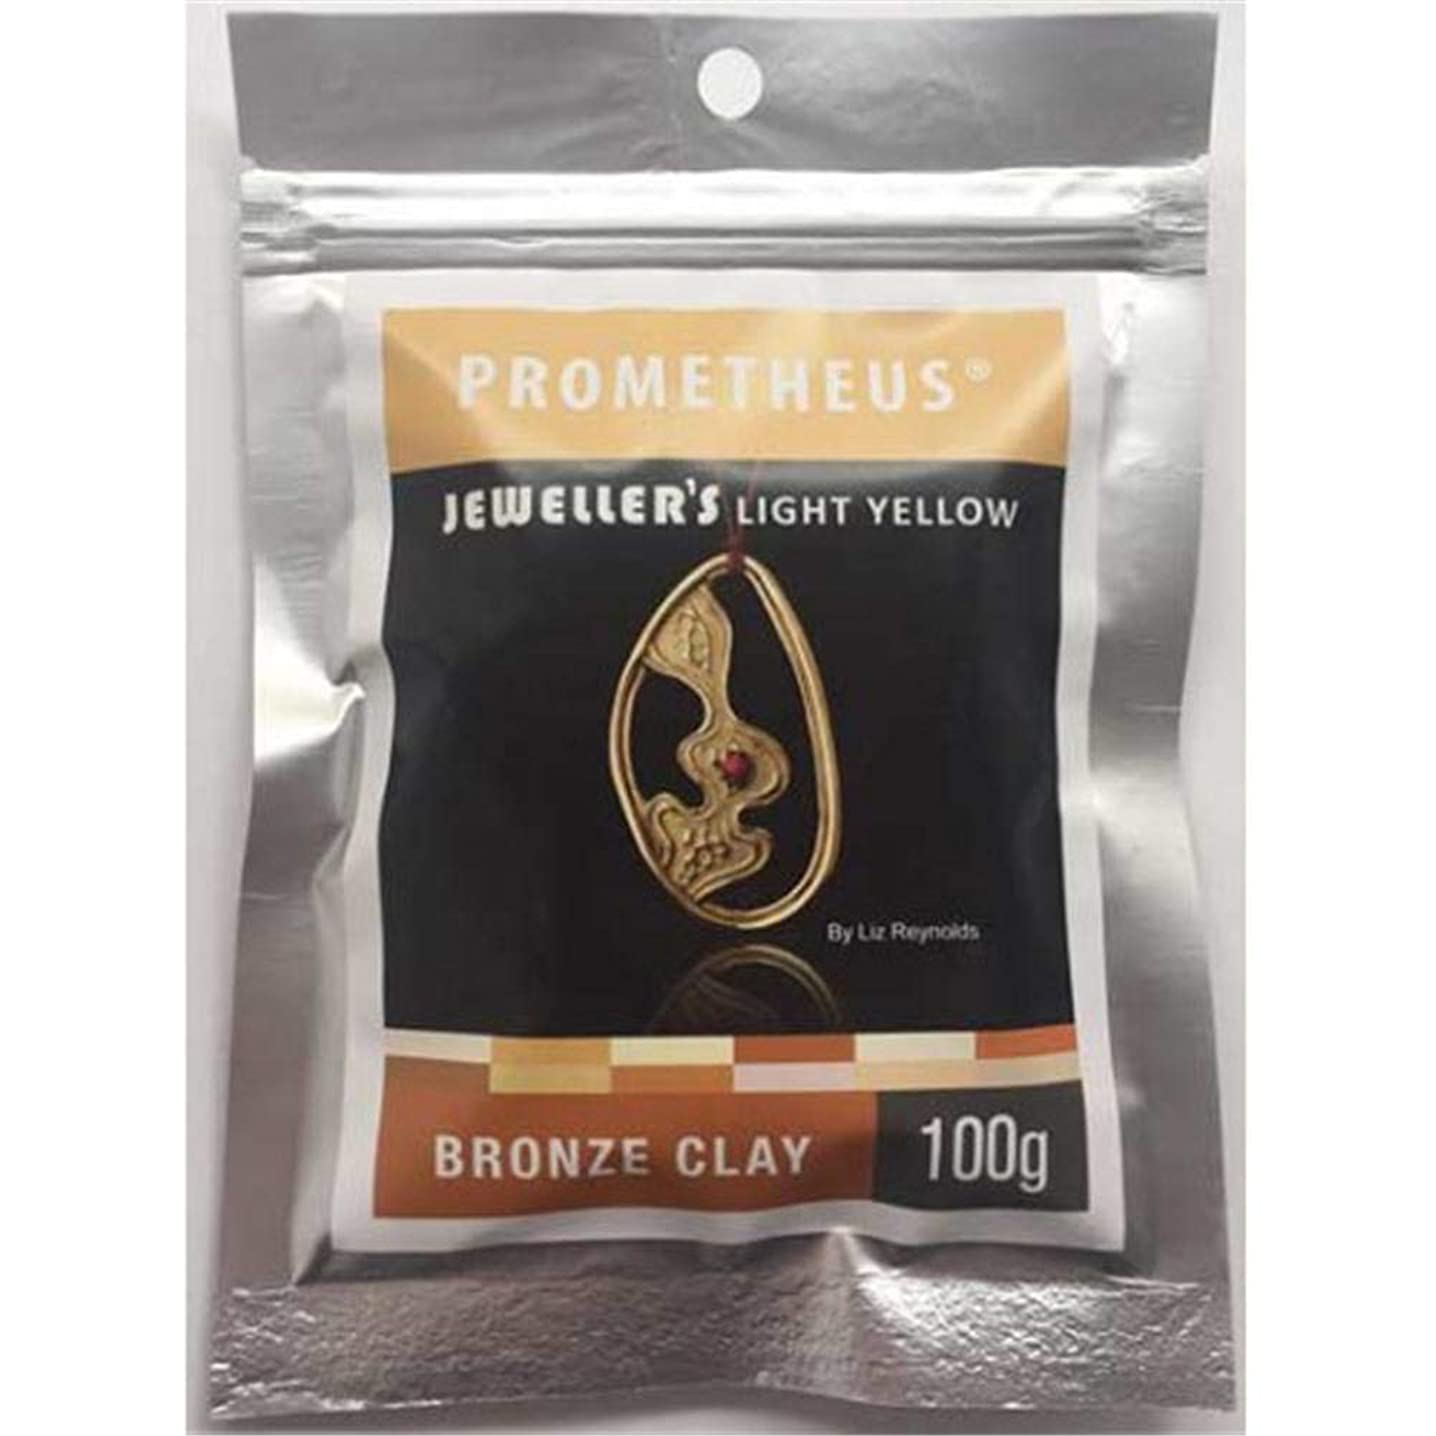 Prometheus Light Yellow Bronze Clay Rapid and Low Fire Metal Clay for Jewelry Making